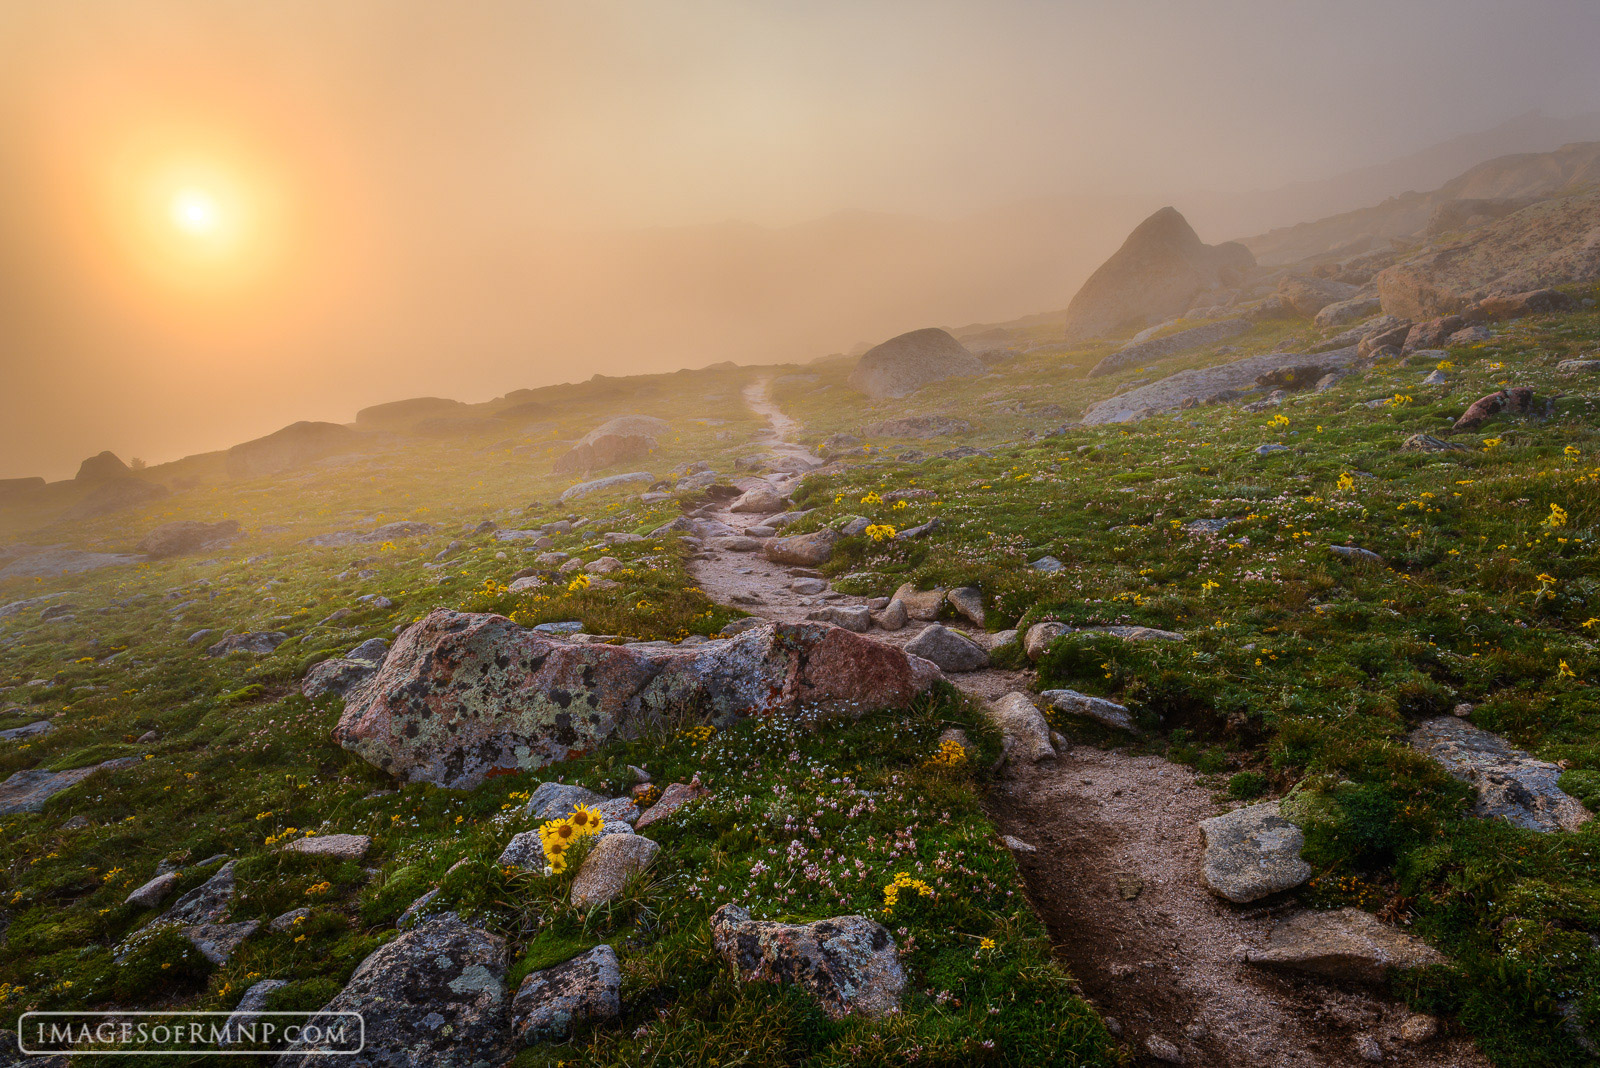 2014, Colorado, USA, alpine sunflower, america, flower, fog, footway, july, man-made, old man of the mountain, path, plant, rmnp, rocky, rocky mountain national park, rydbergia, summer, sun, trail, tu, photo